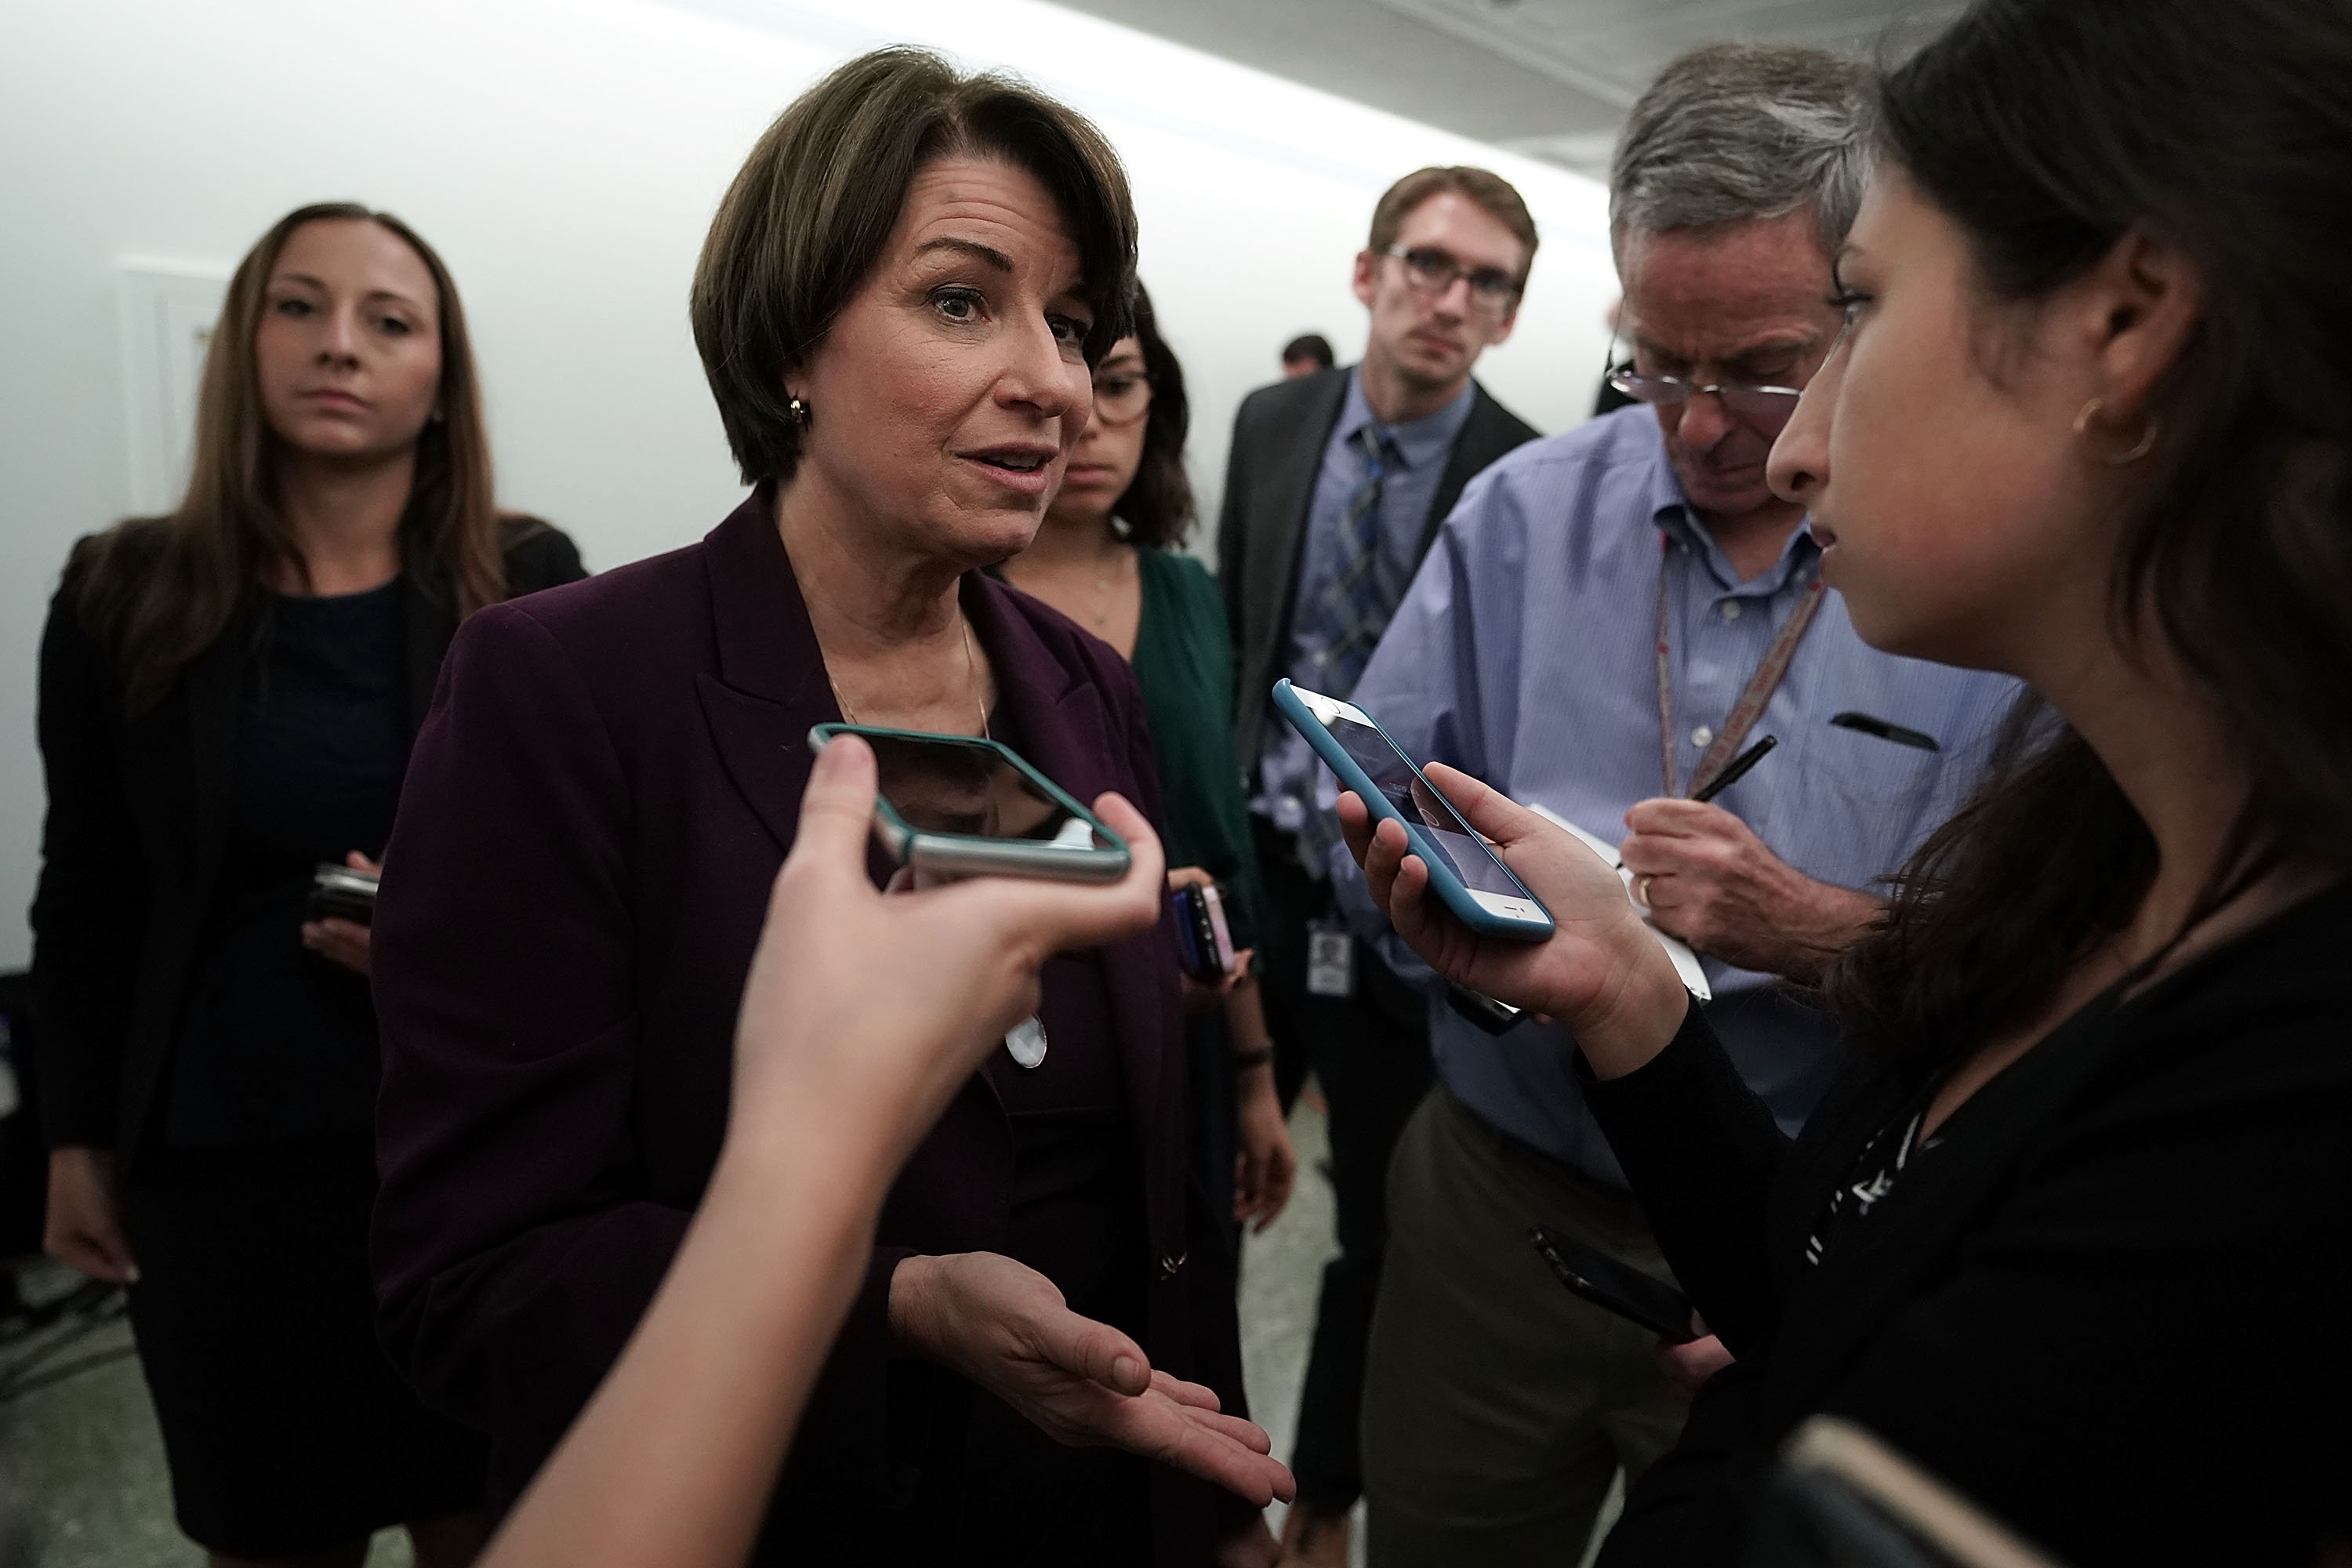 Sen. Amy Klobuchar has won every one of her elections by huge margins. Now she's running for president.